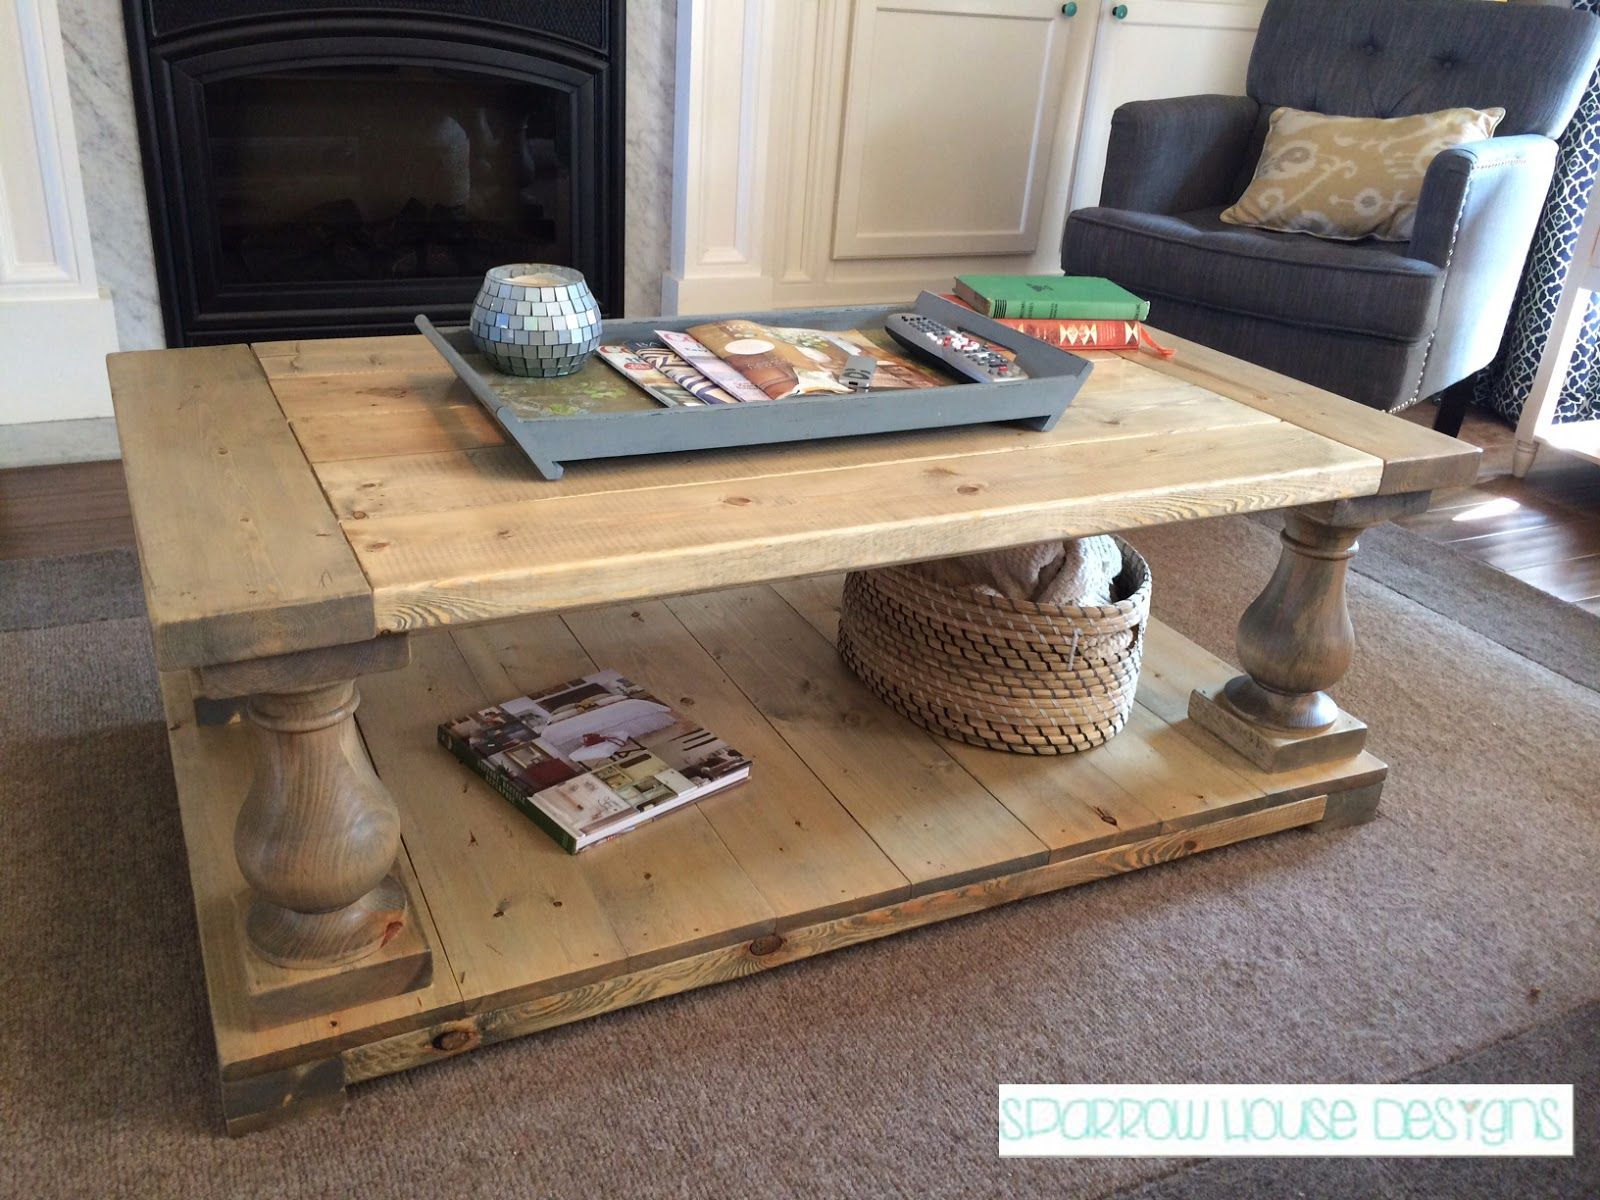 Sparrow House Designs Turned Leg Coffee Table